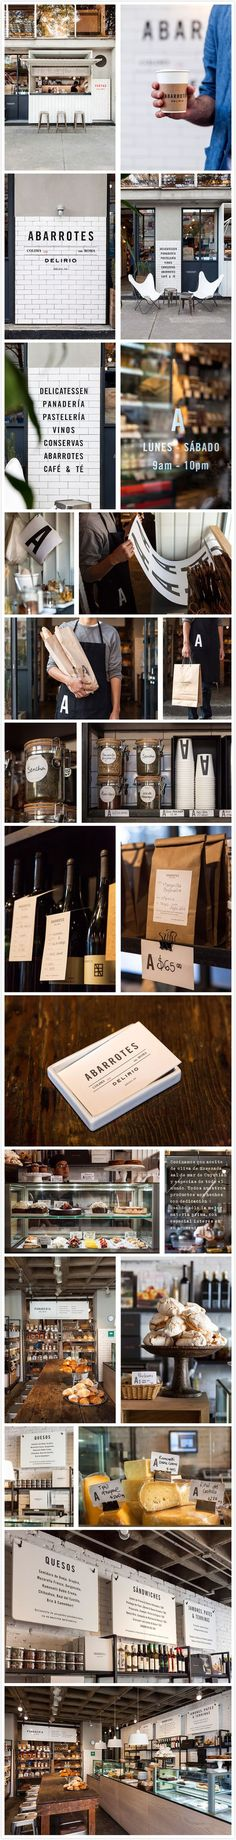 Awesome Branding Design - I love the eclectic style of Abarrotes Delirio by SAVVY studio; one of my favorite blends of design so far. Brand Identity Design, Corporate Design, Retail Design, Branding Design, Café Bar, Cafe Branding, Restaurant Branding, Retail Branding, Deco Restaurant